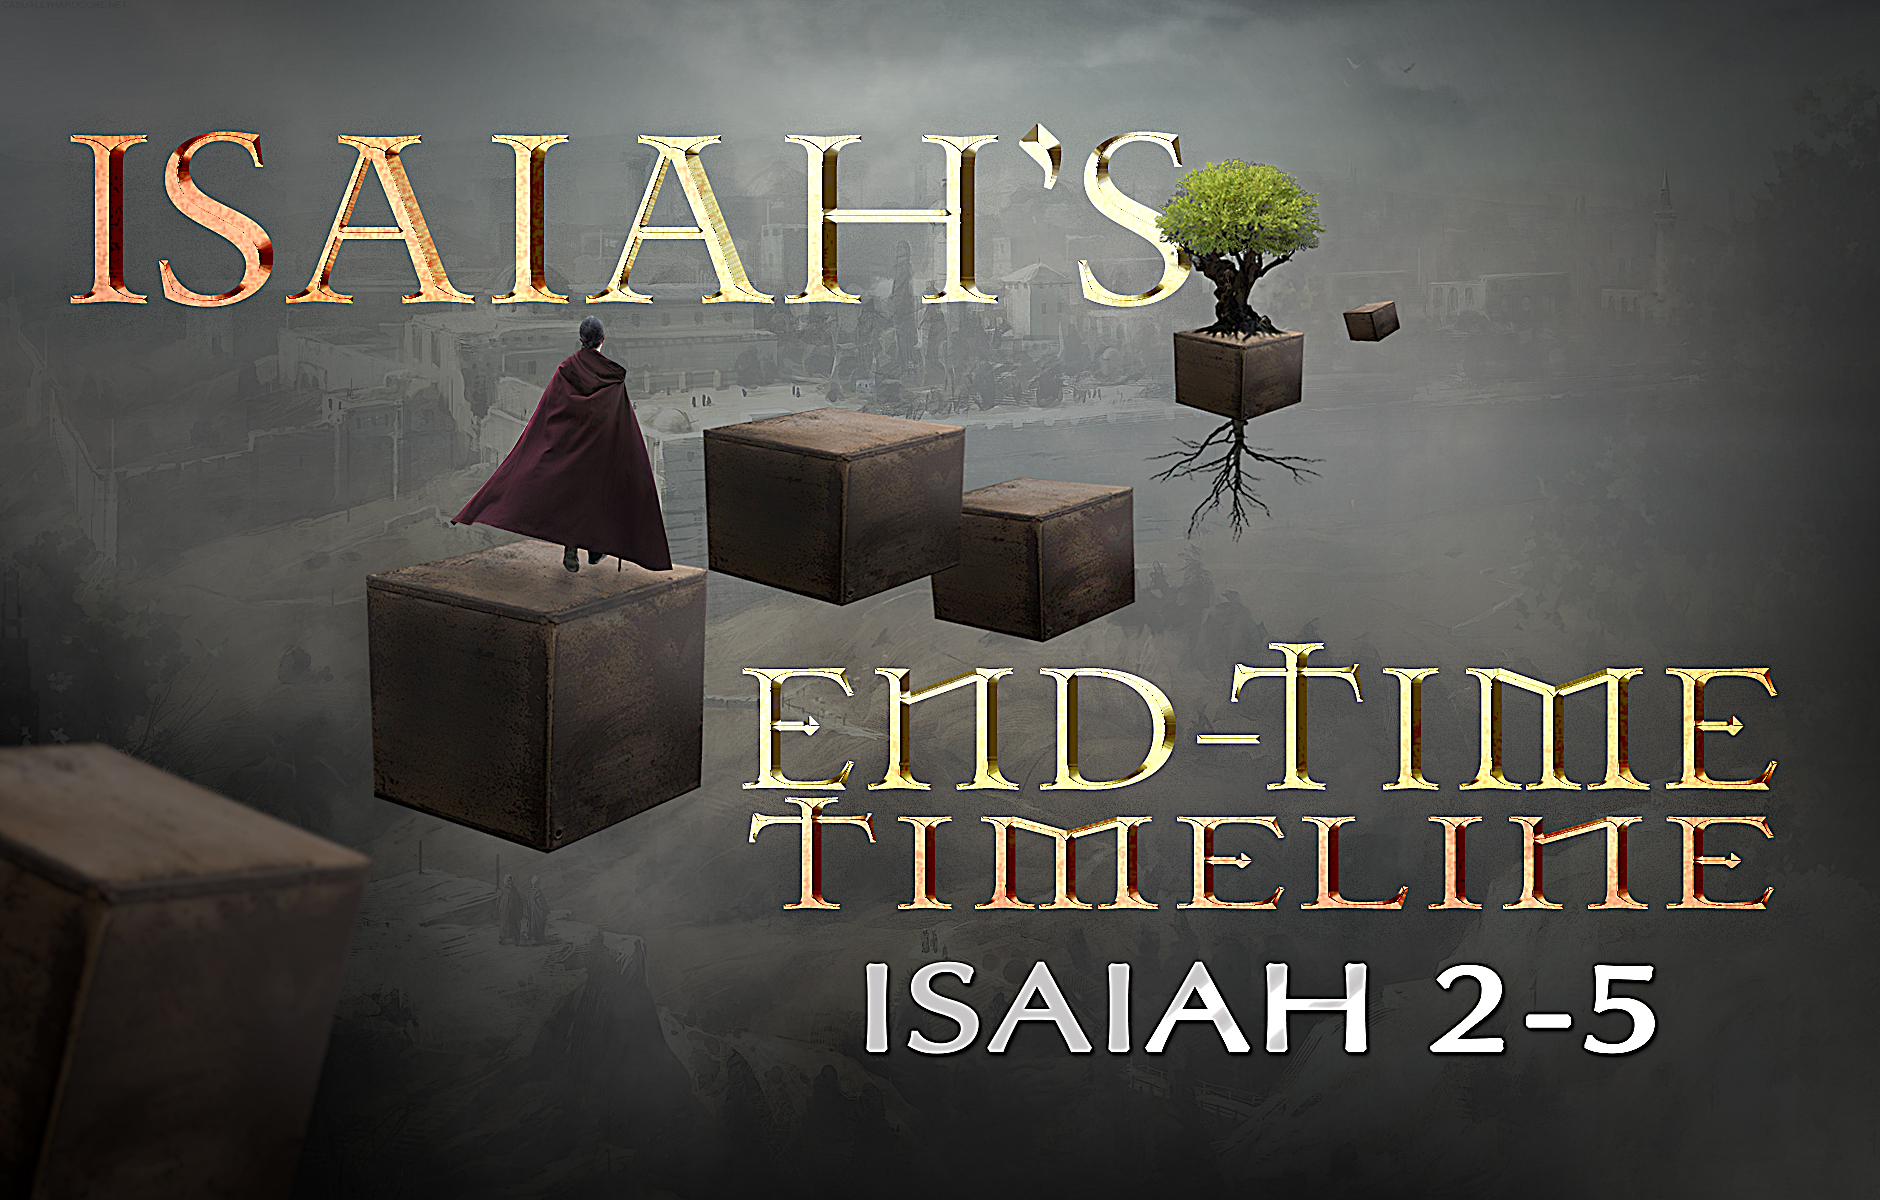 Isaiah's End-time Timeline Chapters 2-5